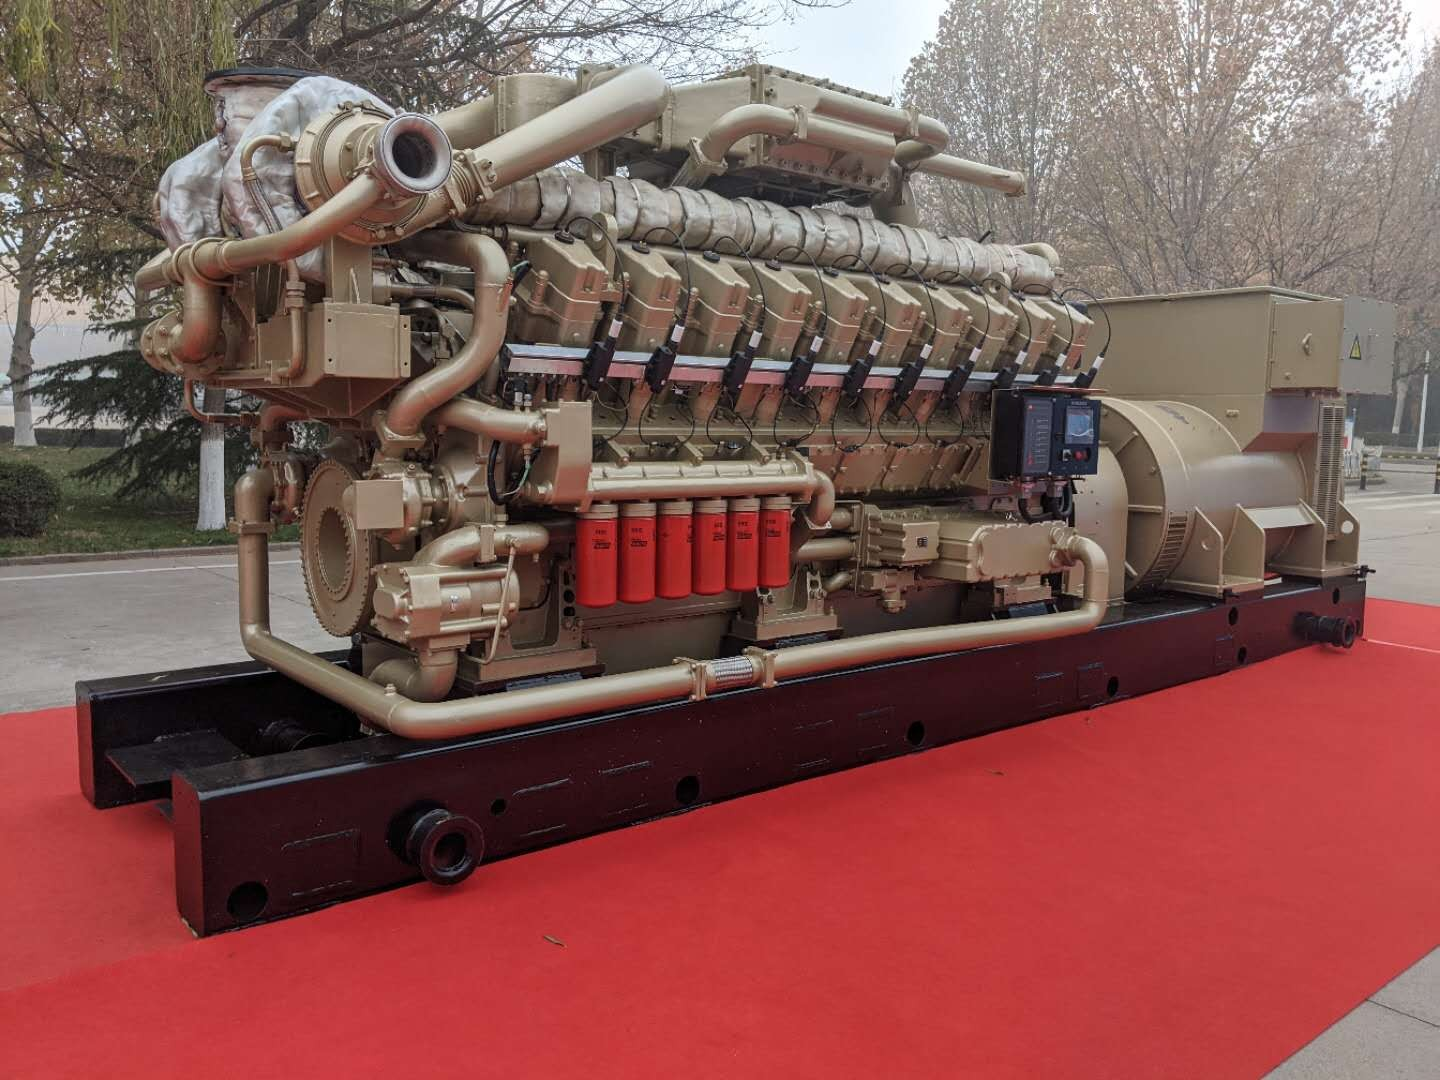 1900 kw natural gas generating set Manufacturers, 1900 kw natural gas generating set Factory, Supply 1900 kw natural gas generating set